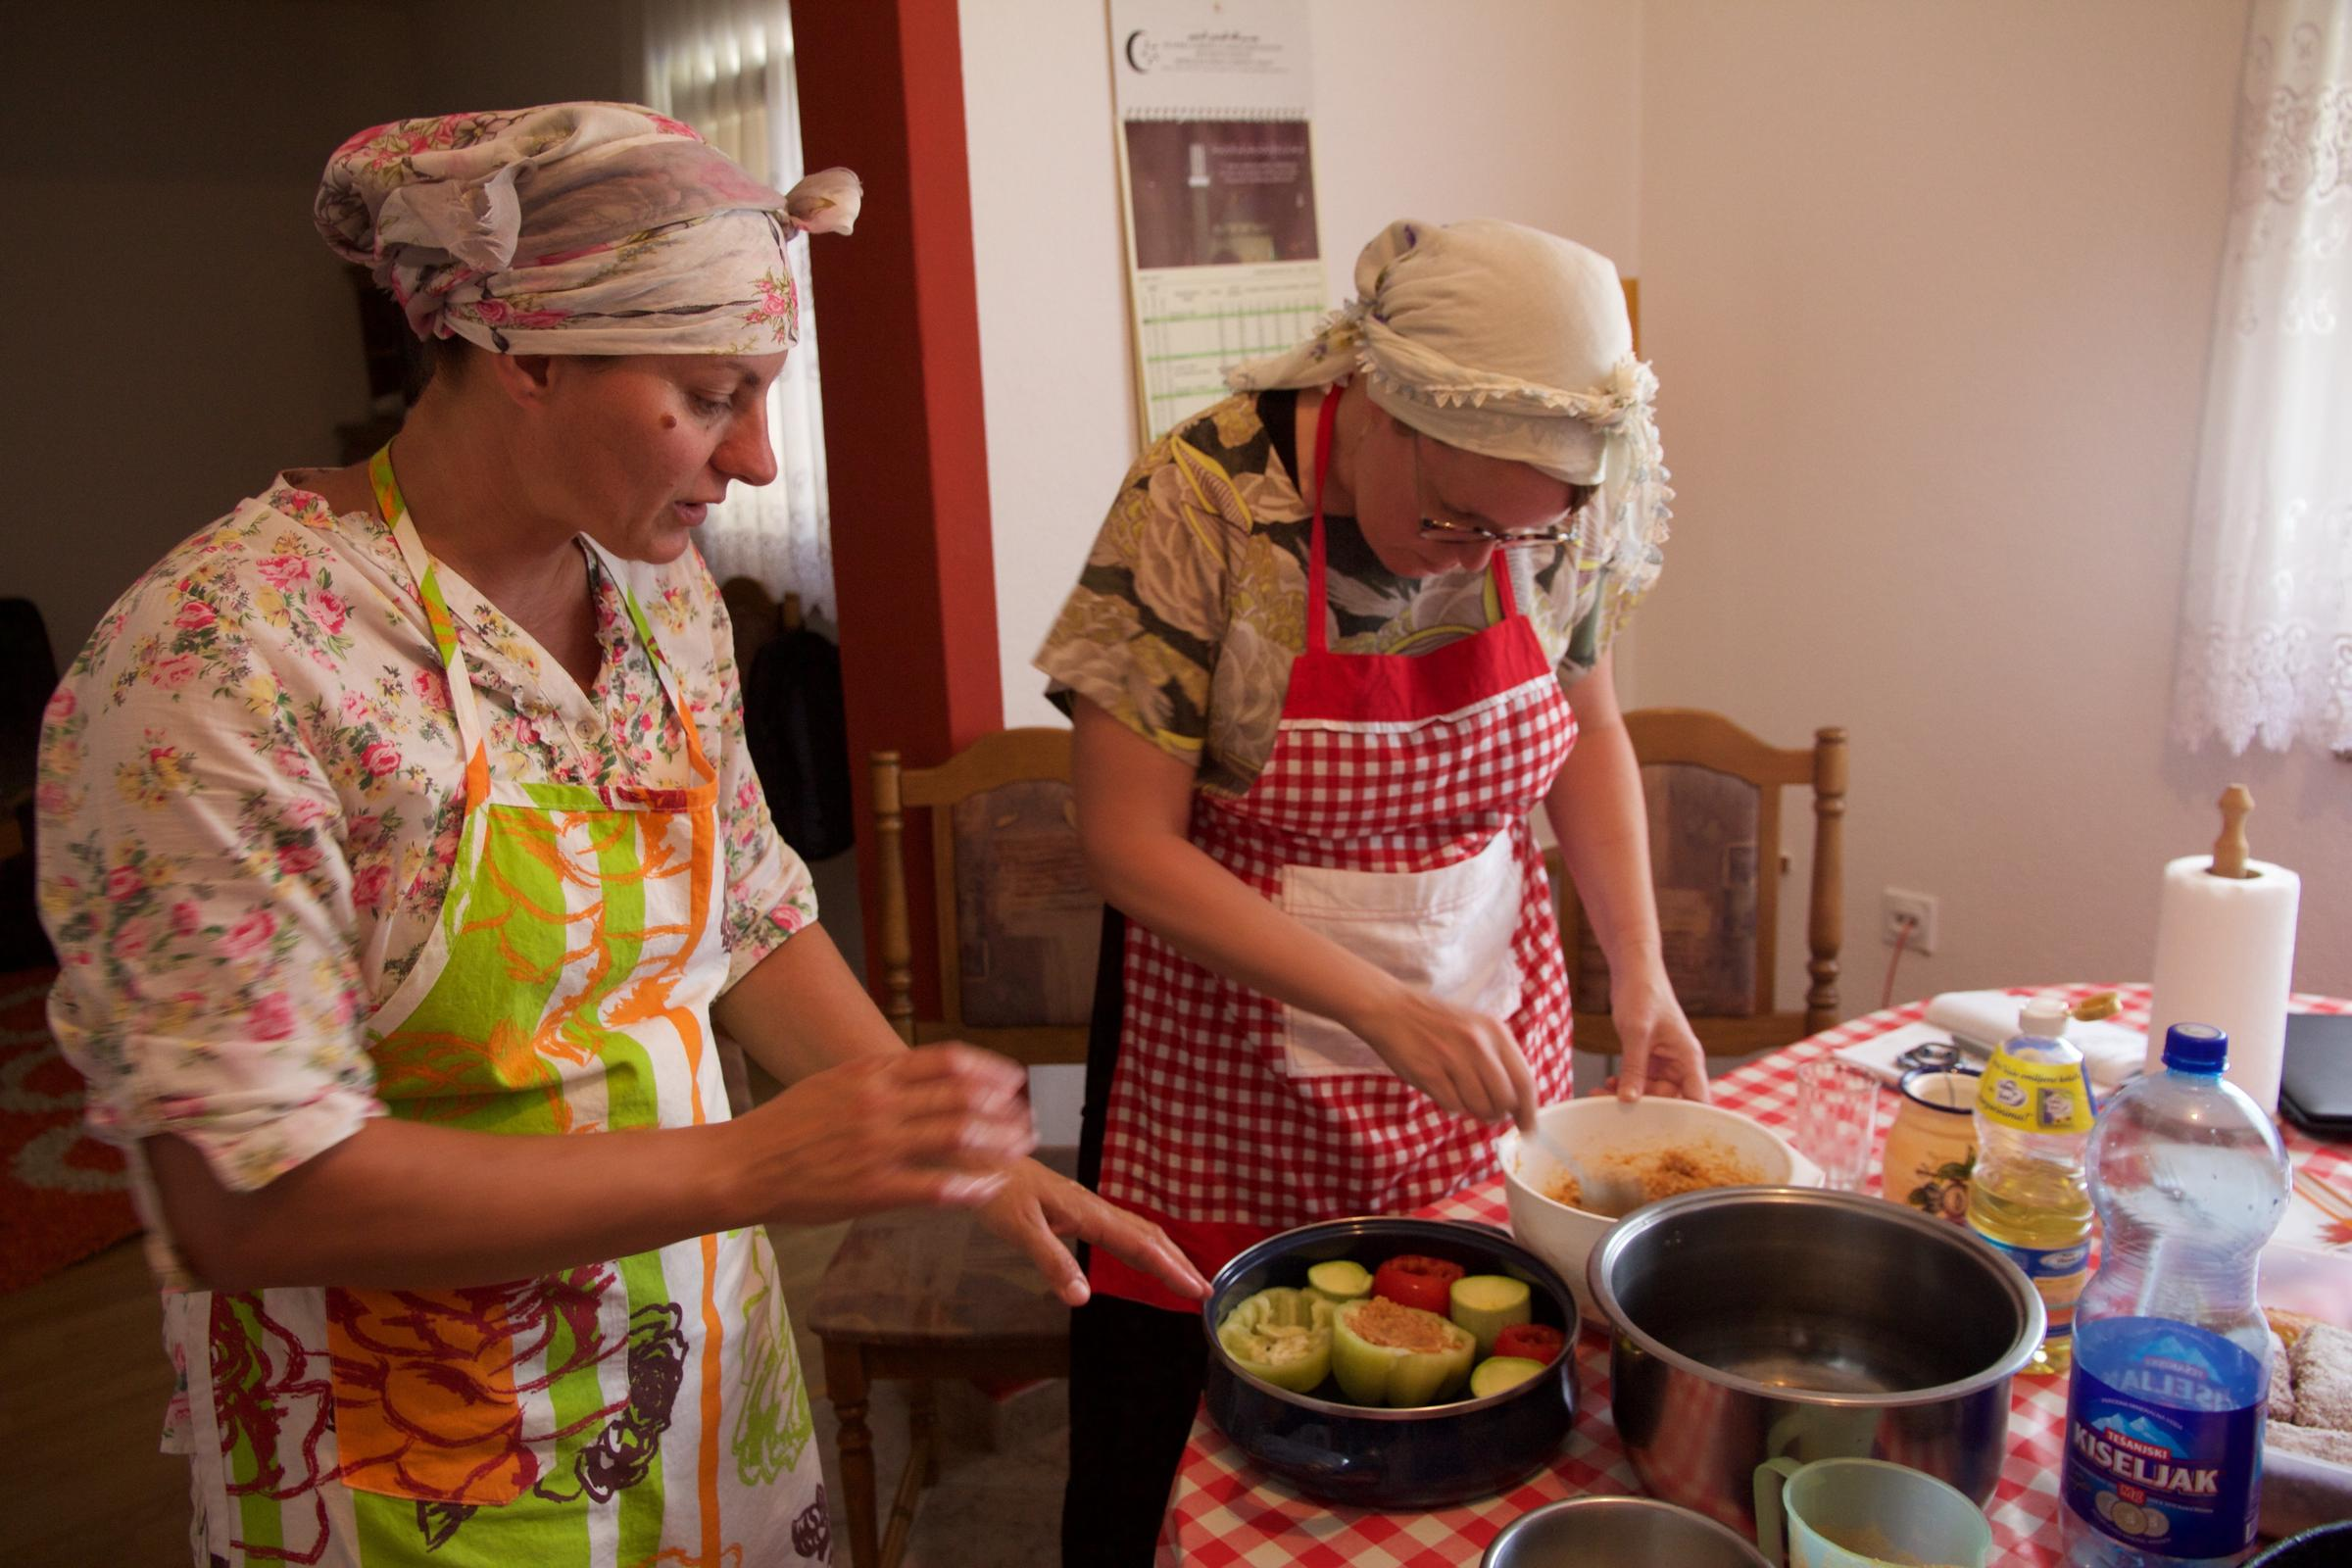 Missouri Botanical Garden scientist eats with Bosnians to learn how ...